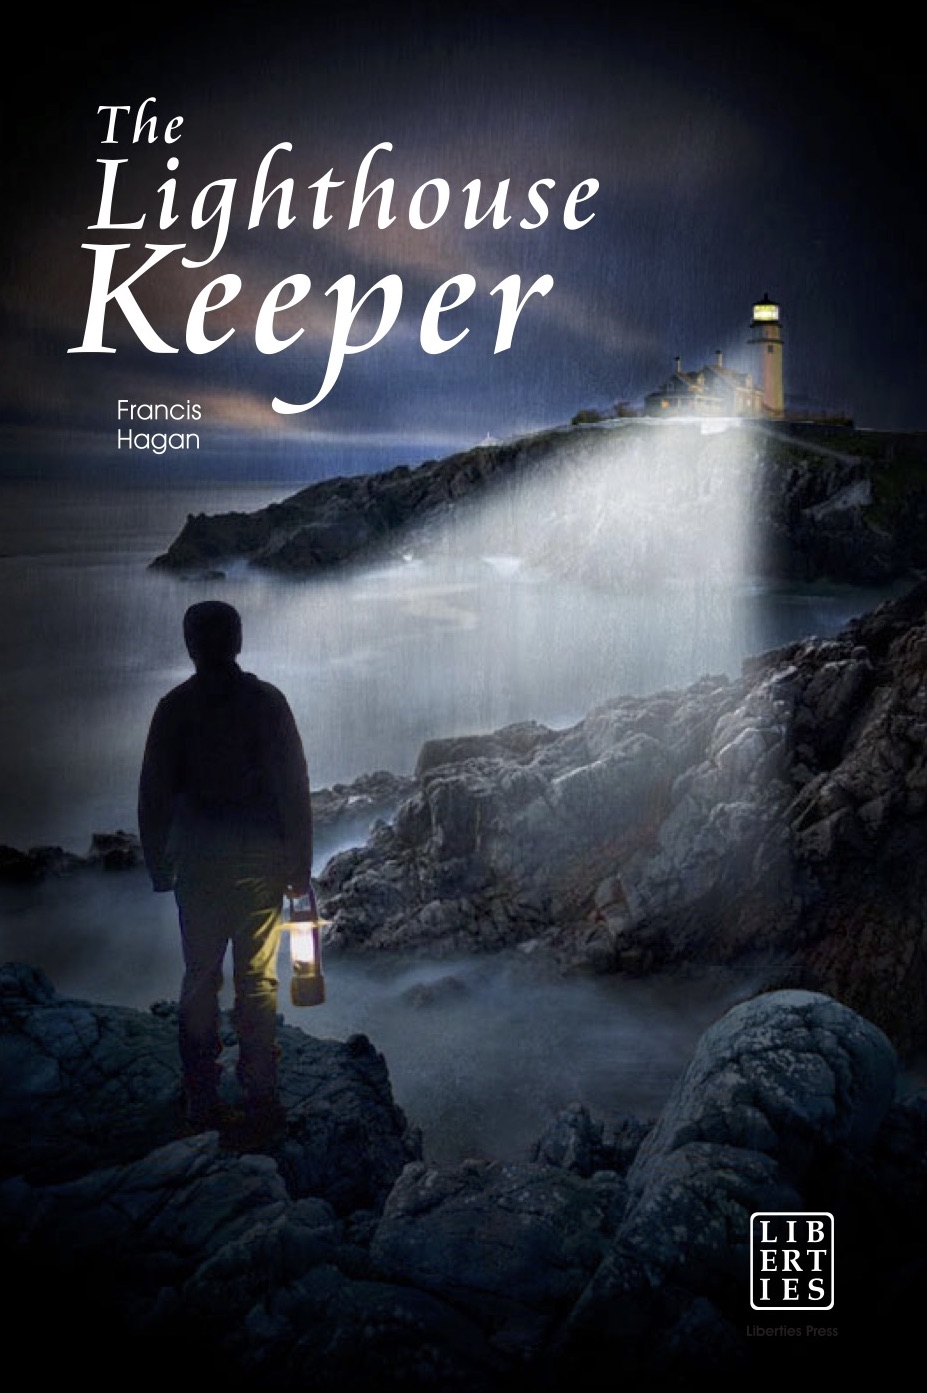 LighthouseKeeper front jacket.jpg